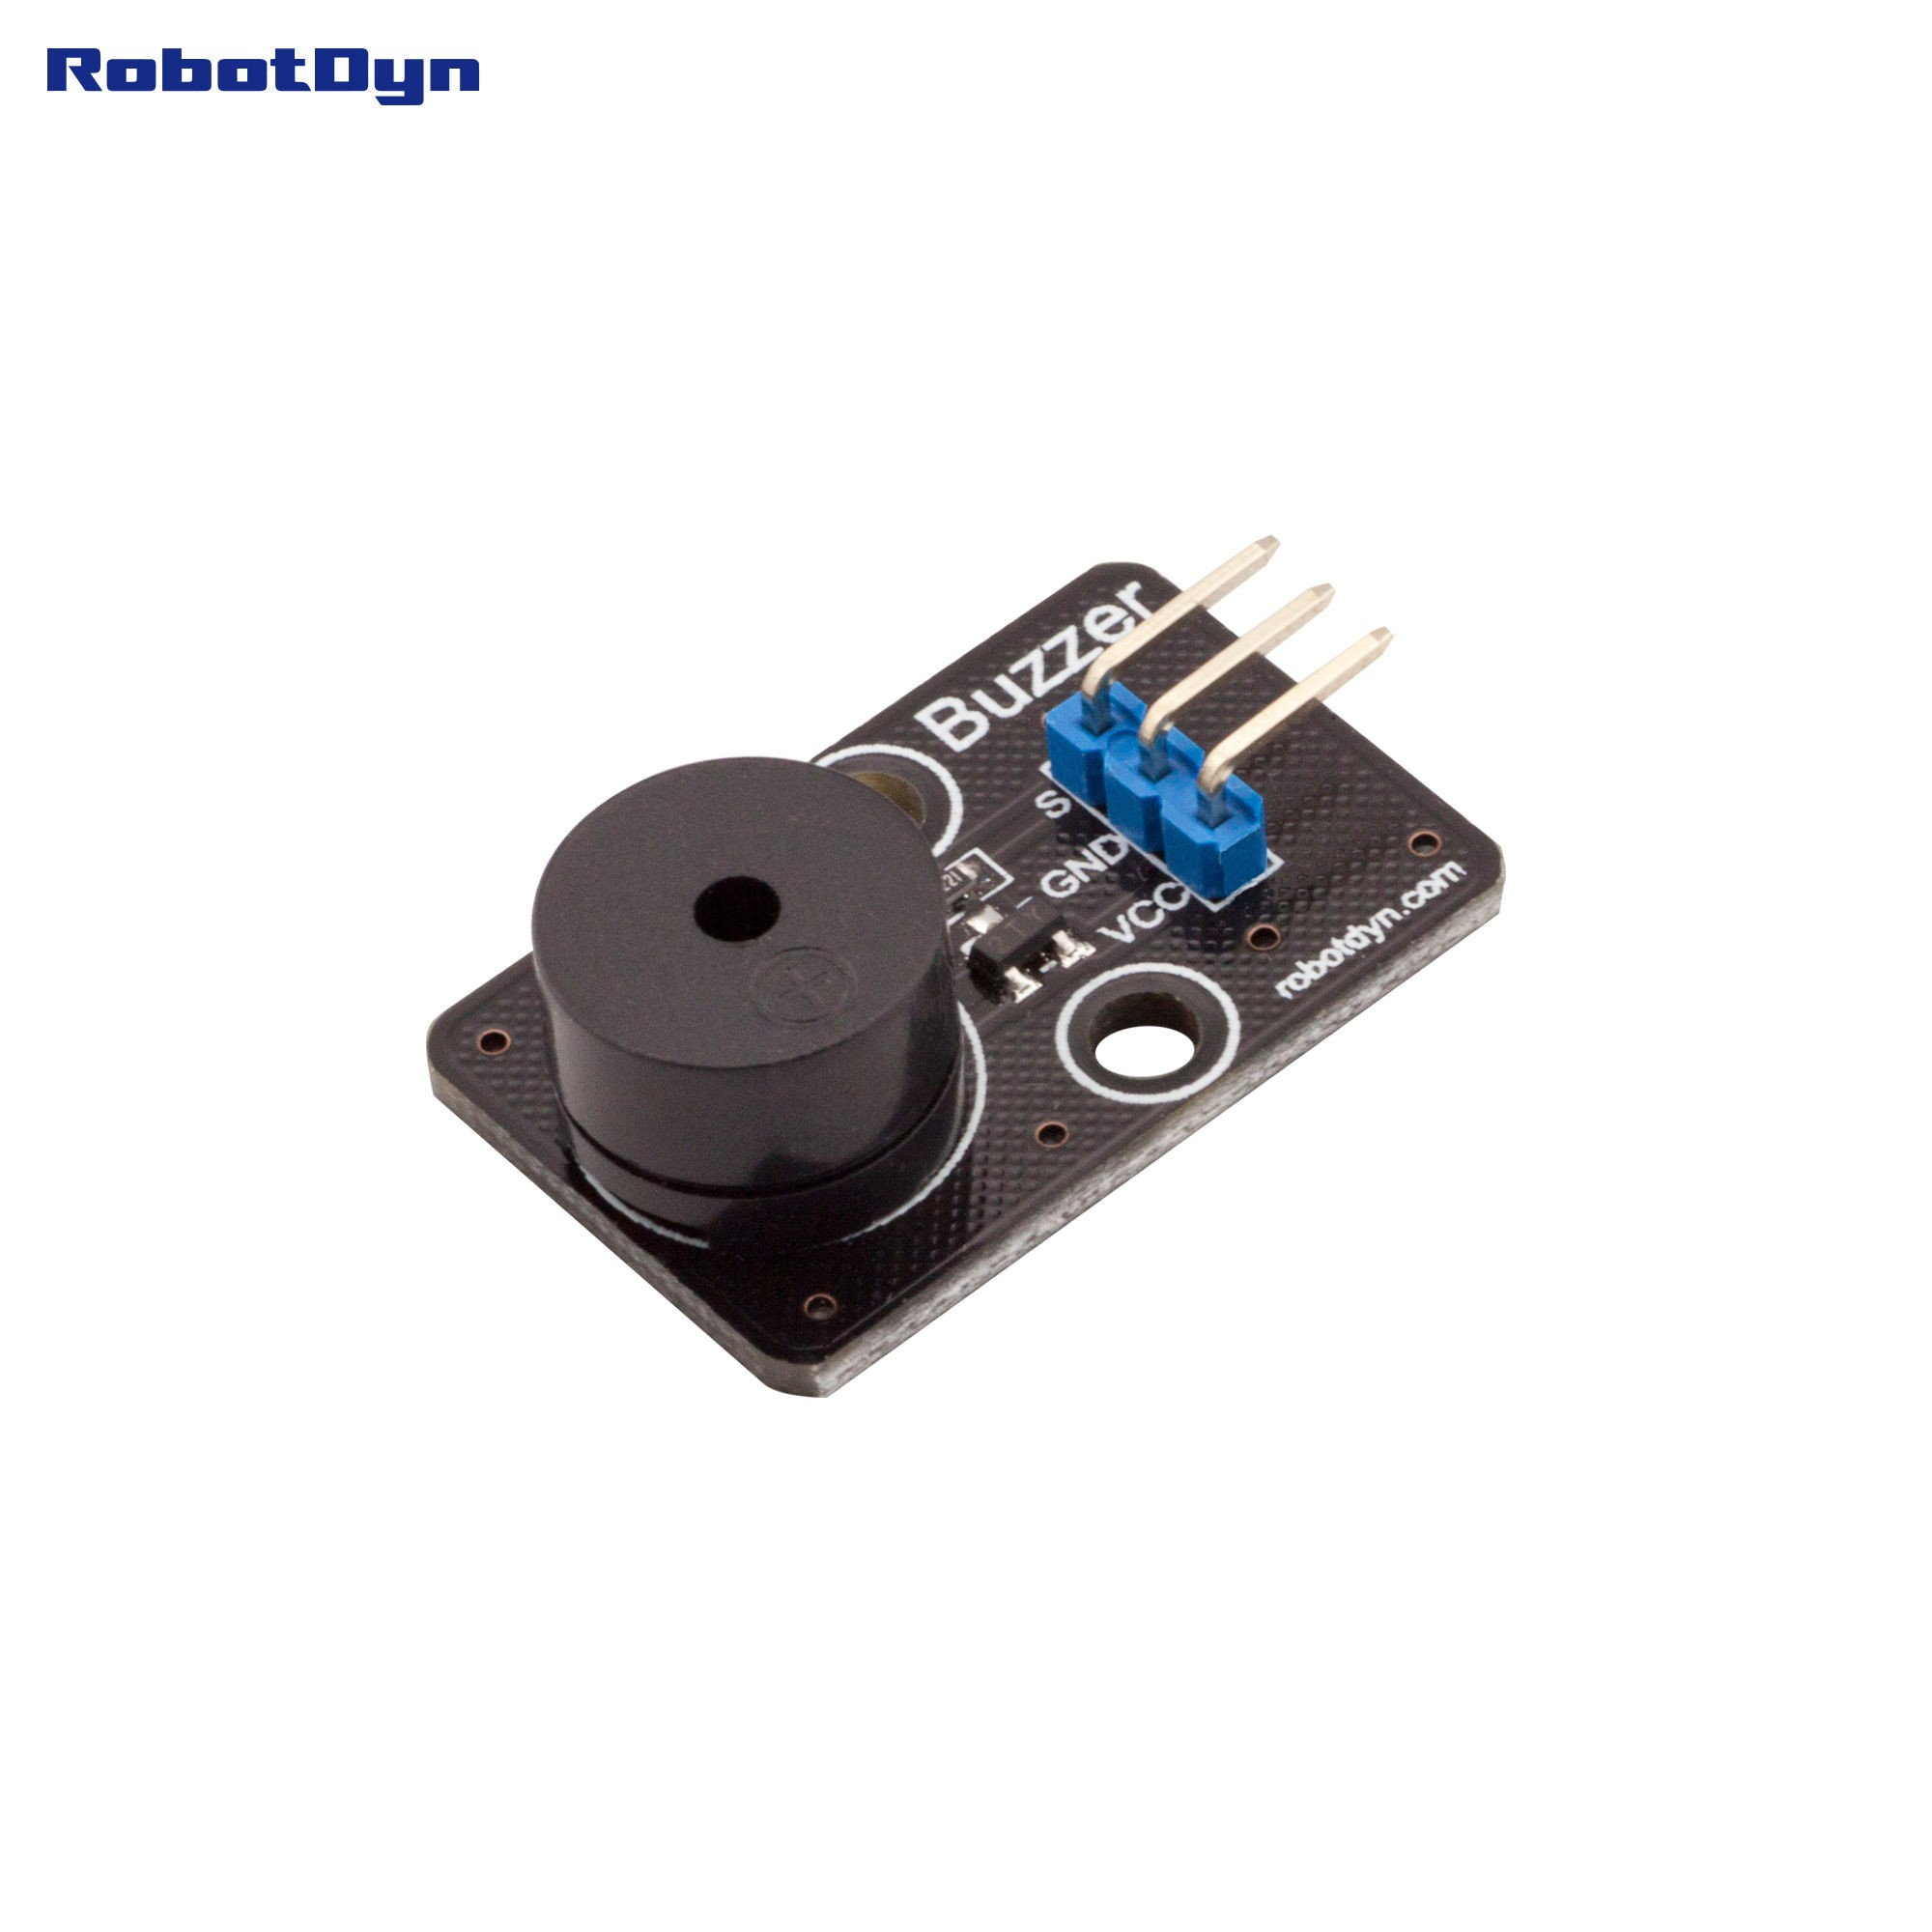 Buzzer Module Green Electronics Store Simple Using Only Passive Components